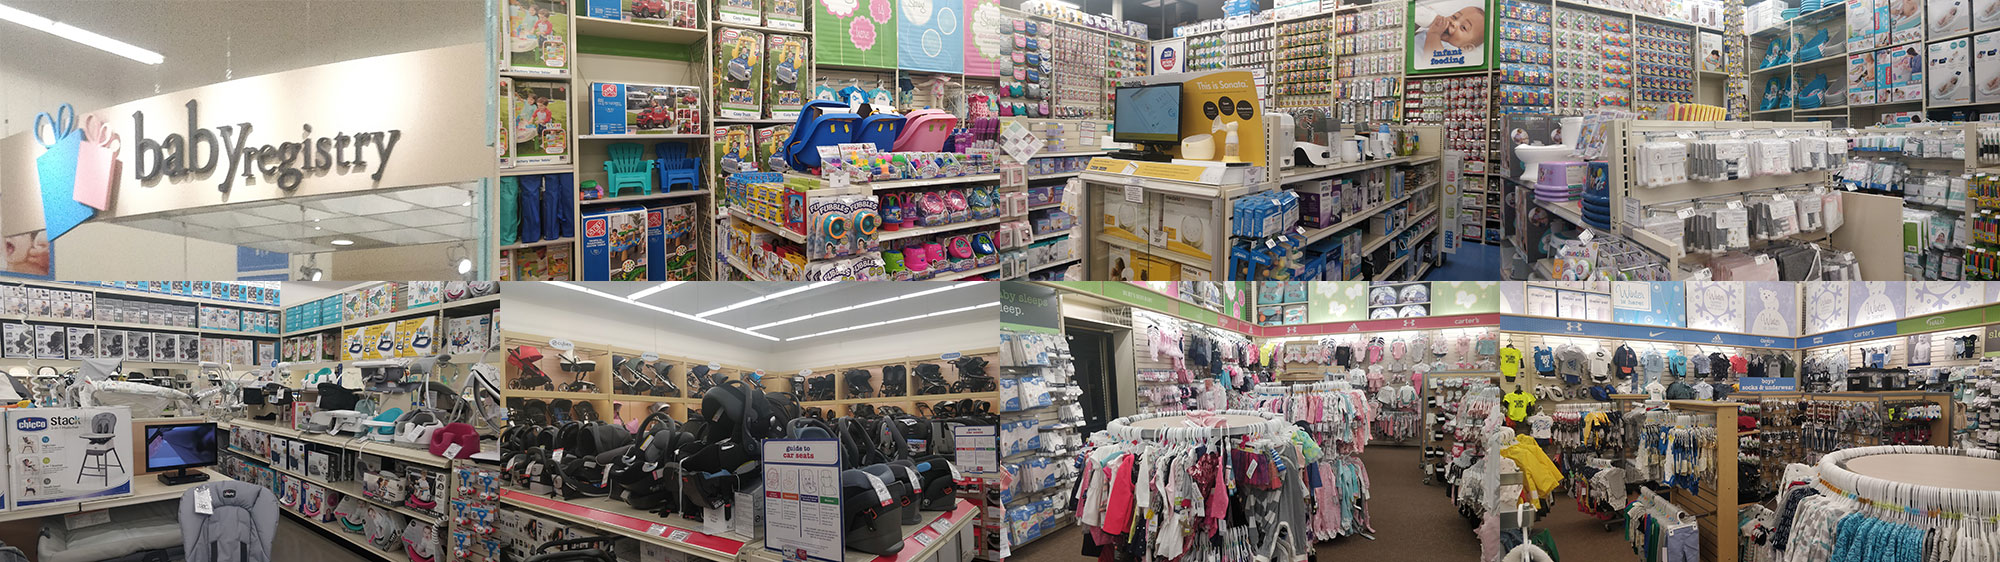 Inside Buy Buy Baby In Tukwila, WA